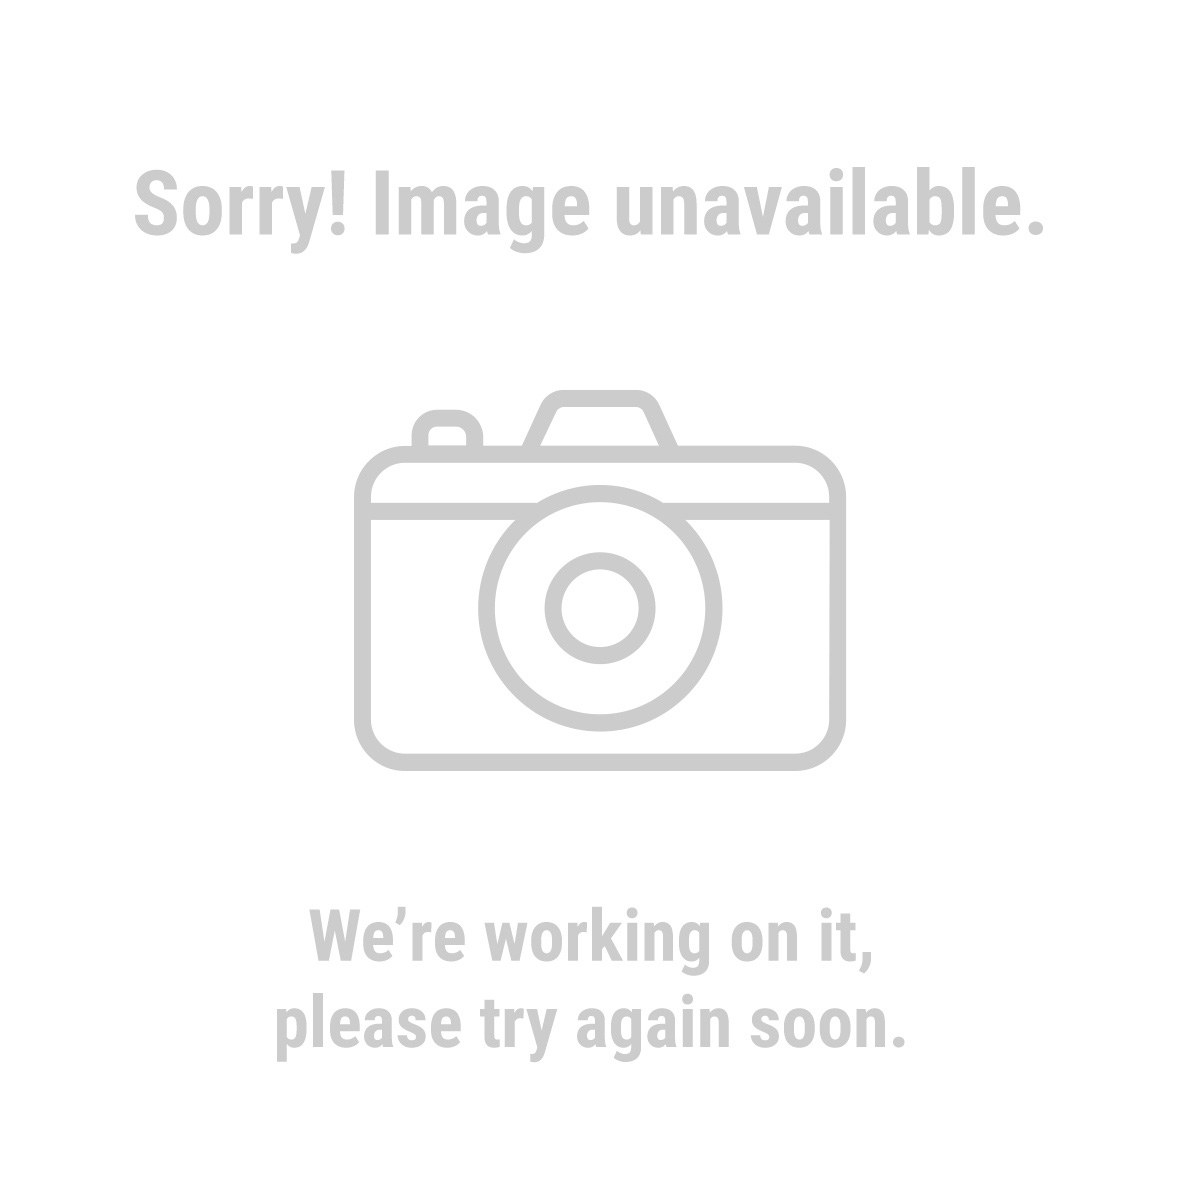 "Pittsburgh 67995 64 Piece 1/4"", 3/8"" and 1/2"" Socket Set"